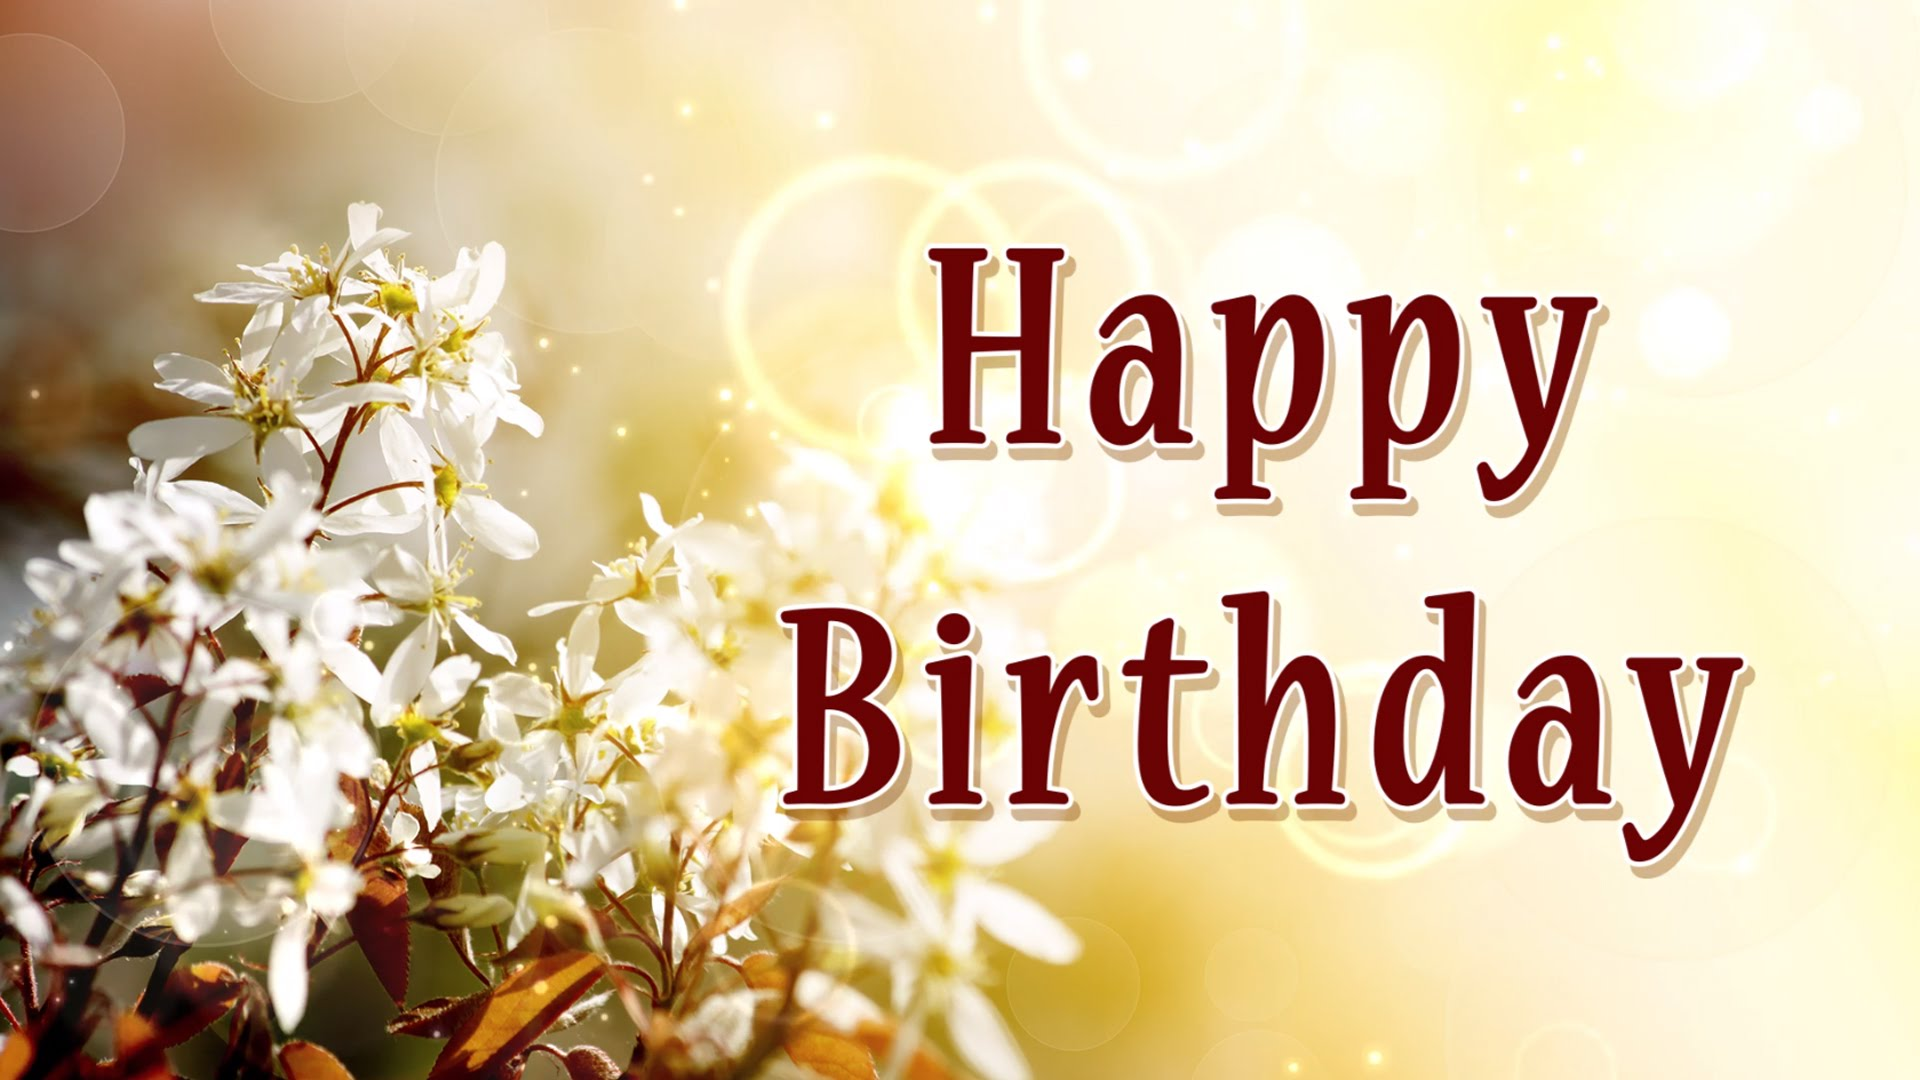 hd happy birthday images free - hd happy birthday images free - Wallpapers, hd-wallpapers, HD, Free, Birthday, 4k-wallpapers, 4k